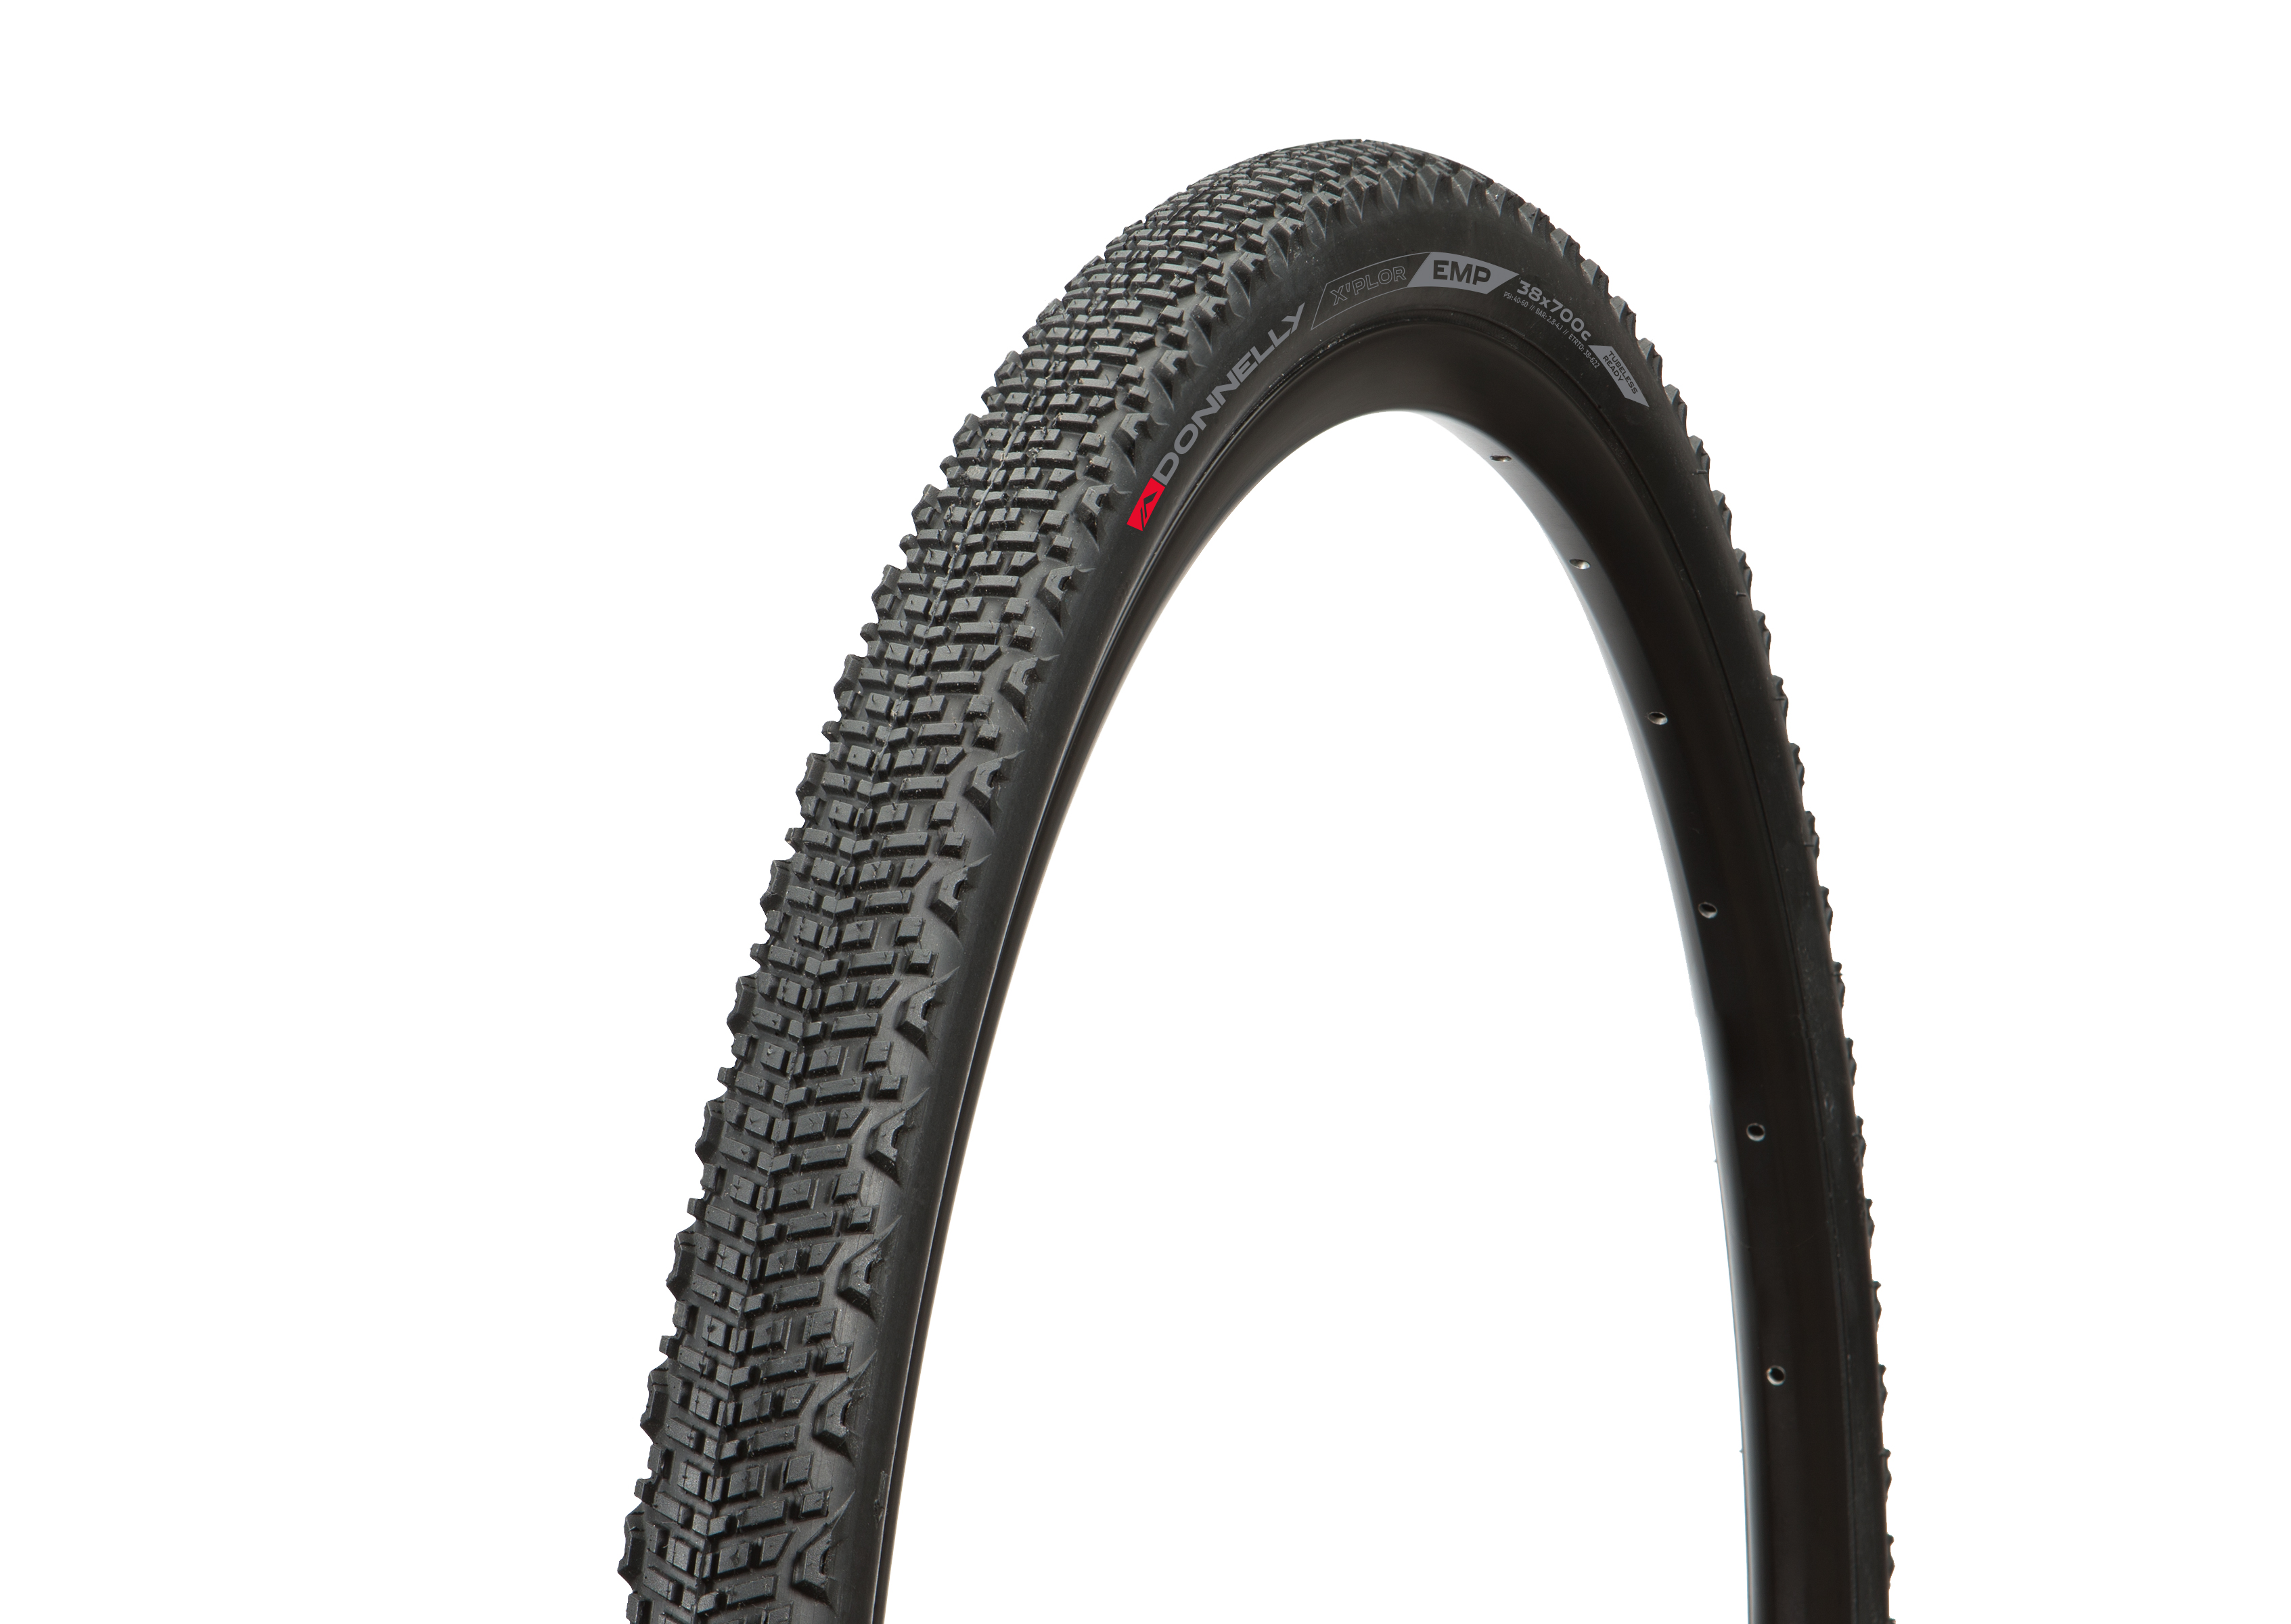 Donnelly EMP Mixed Terrain Adventure Gravel Bicycle Tires MAIN